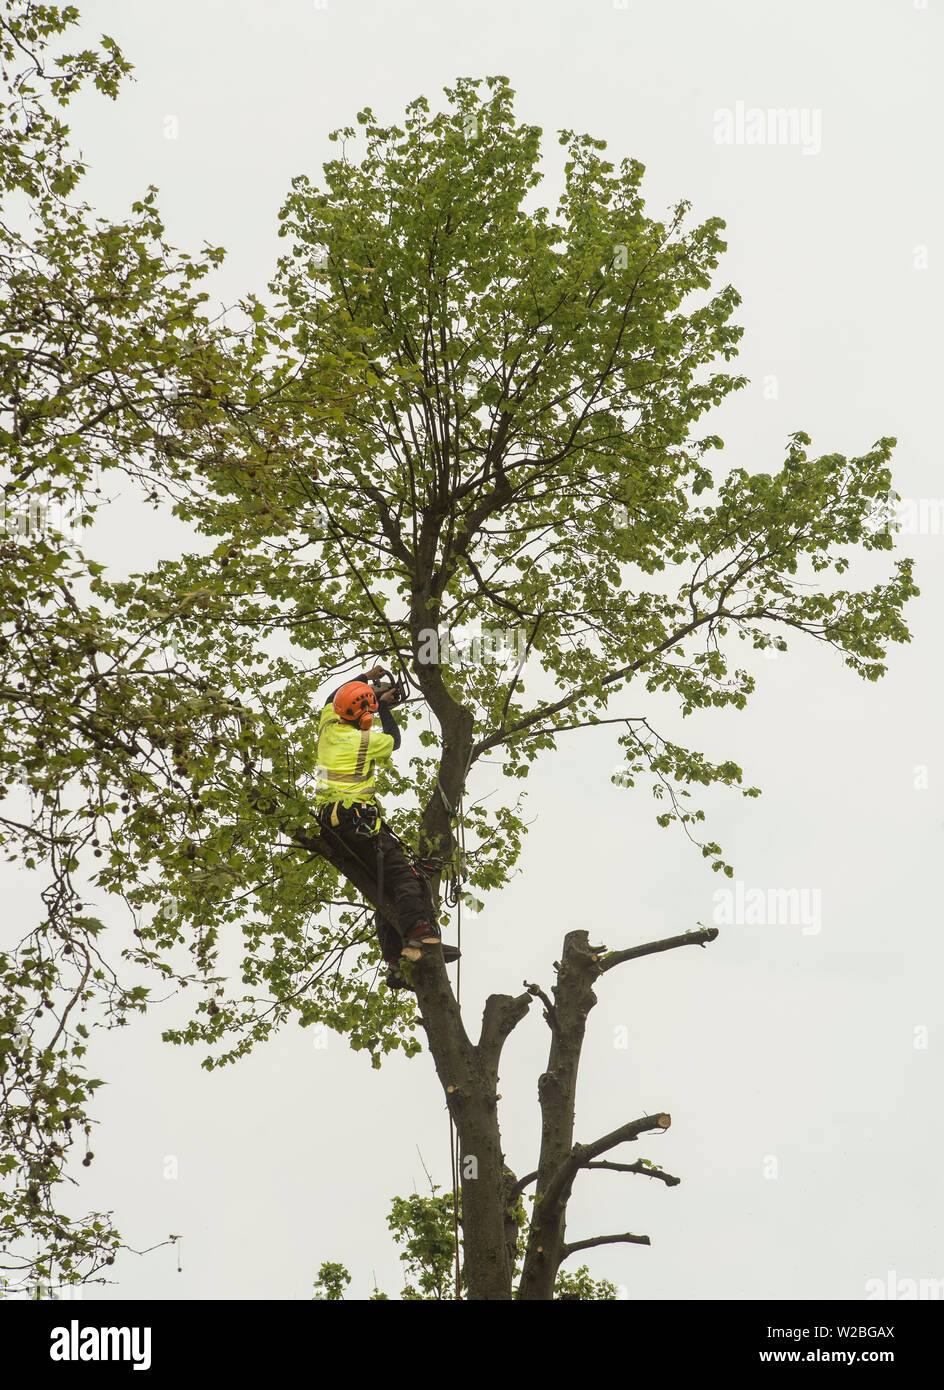 A man in high vis and protection equipment rope climbs with a chainsaw to pollard a tree. - Stock Image